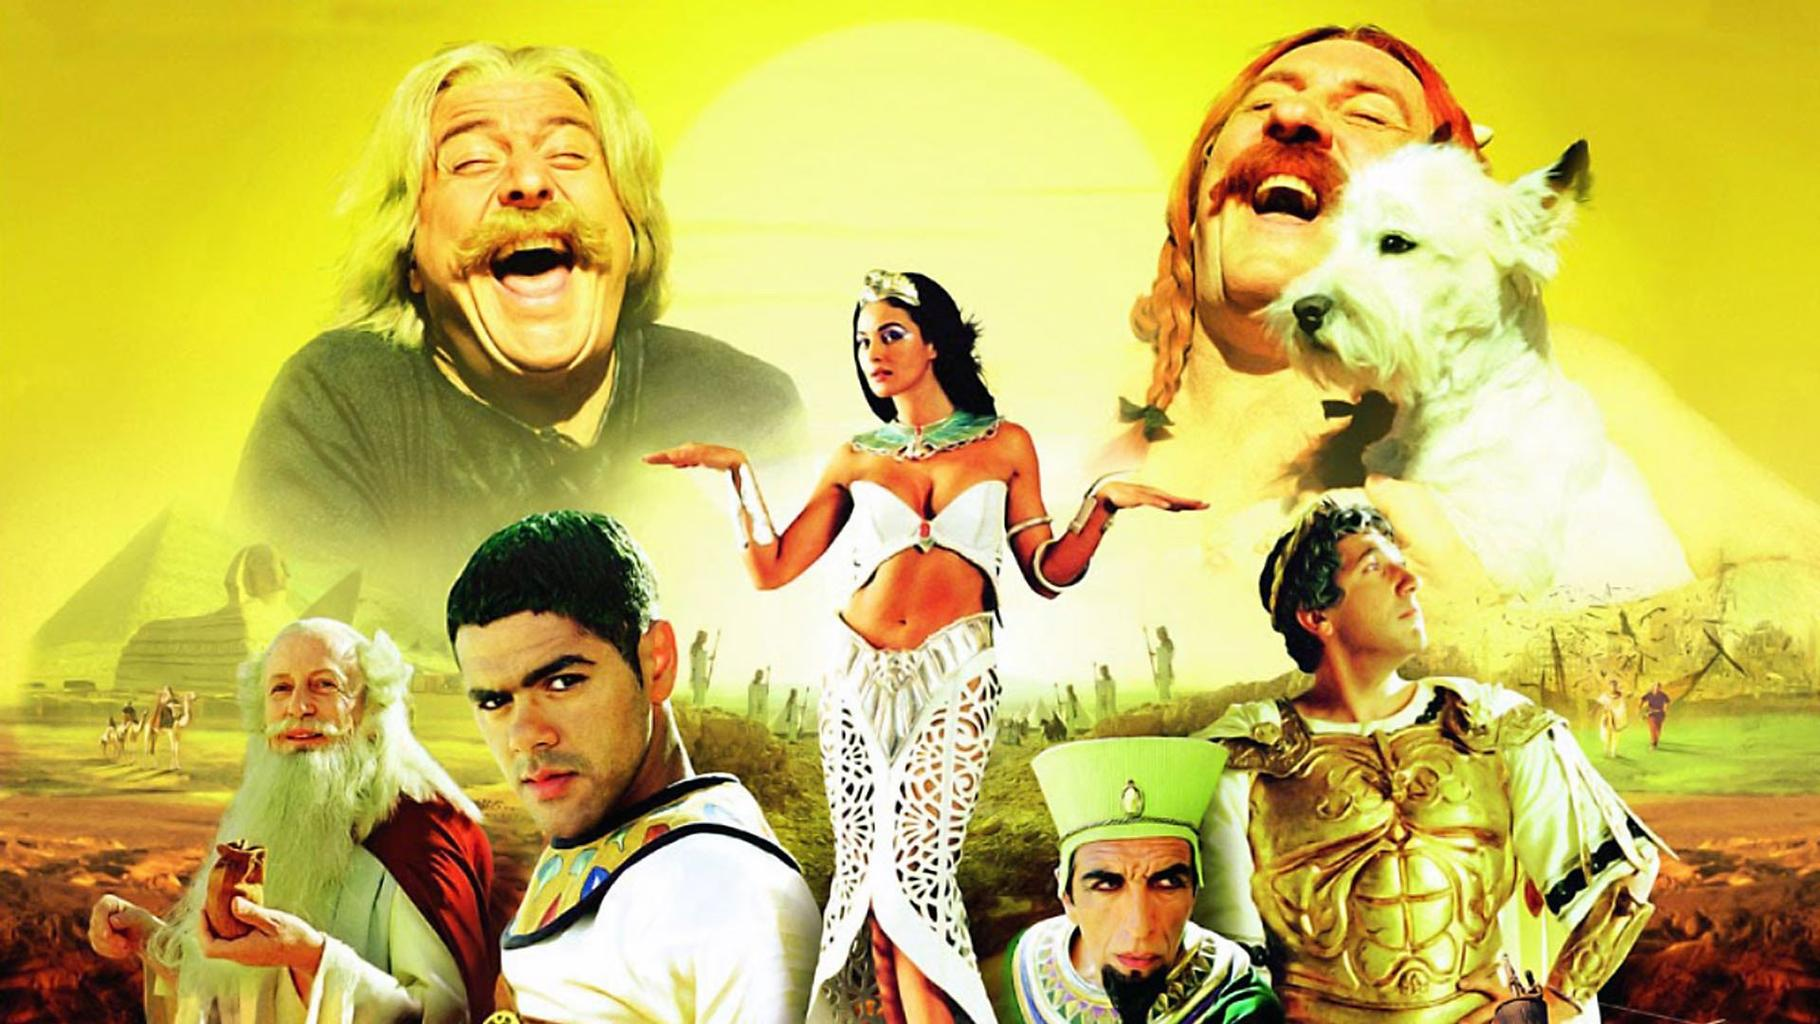 asterix & obelix mission cleopatra full movie in hindi